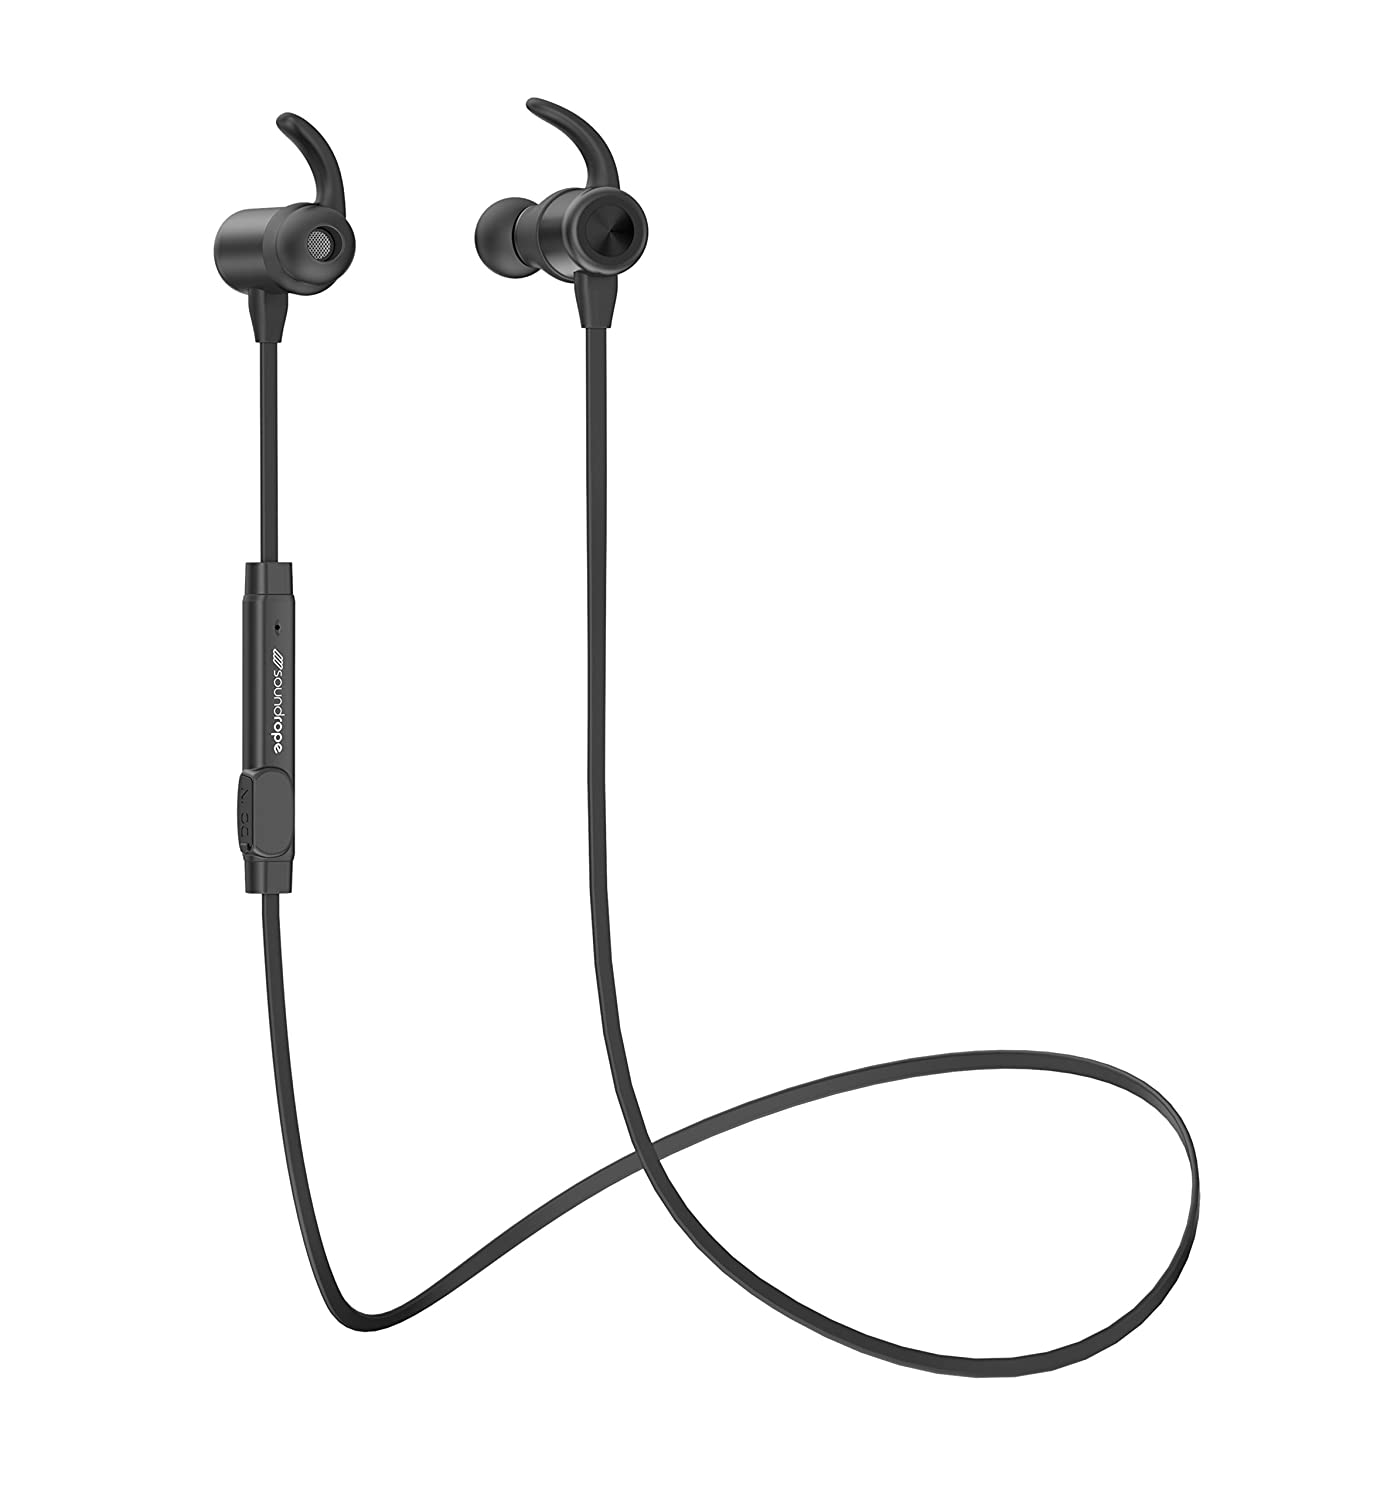 Low Cost Soundrope Bluetooth Headphones With Hq Sound Upgraded Model Sweat Proof Water Resistant Bluetooth Earbuds For Workouts Running Listening More In Ear 24 Month Warranty Resalor Fr